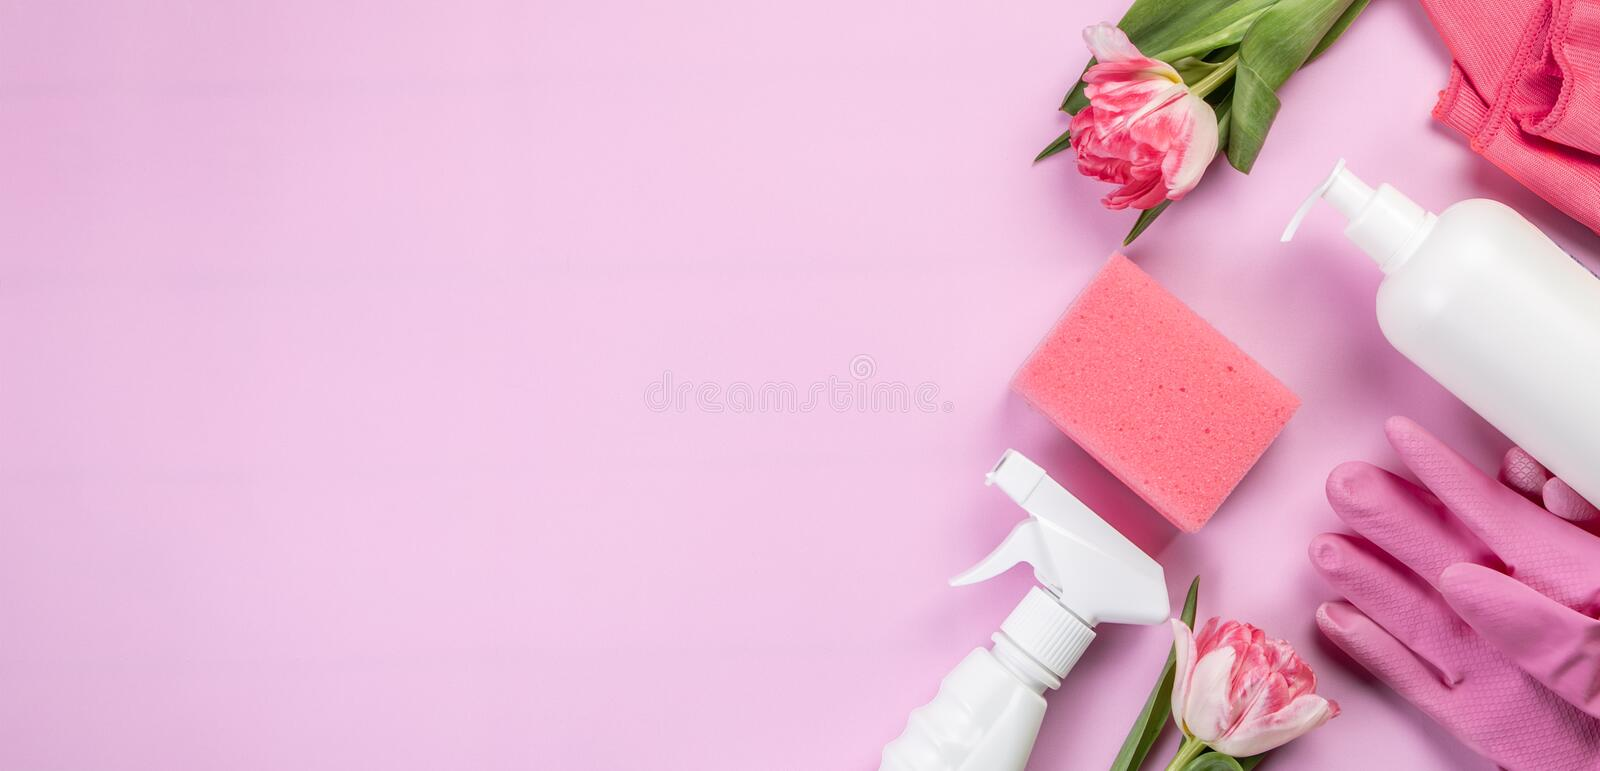 Spring cleaning concept - cleaning products, gloves sponges. Top view stock photos